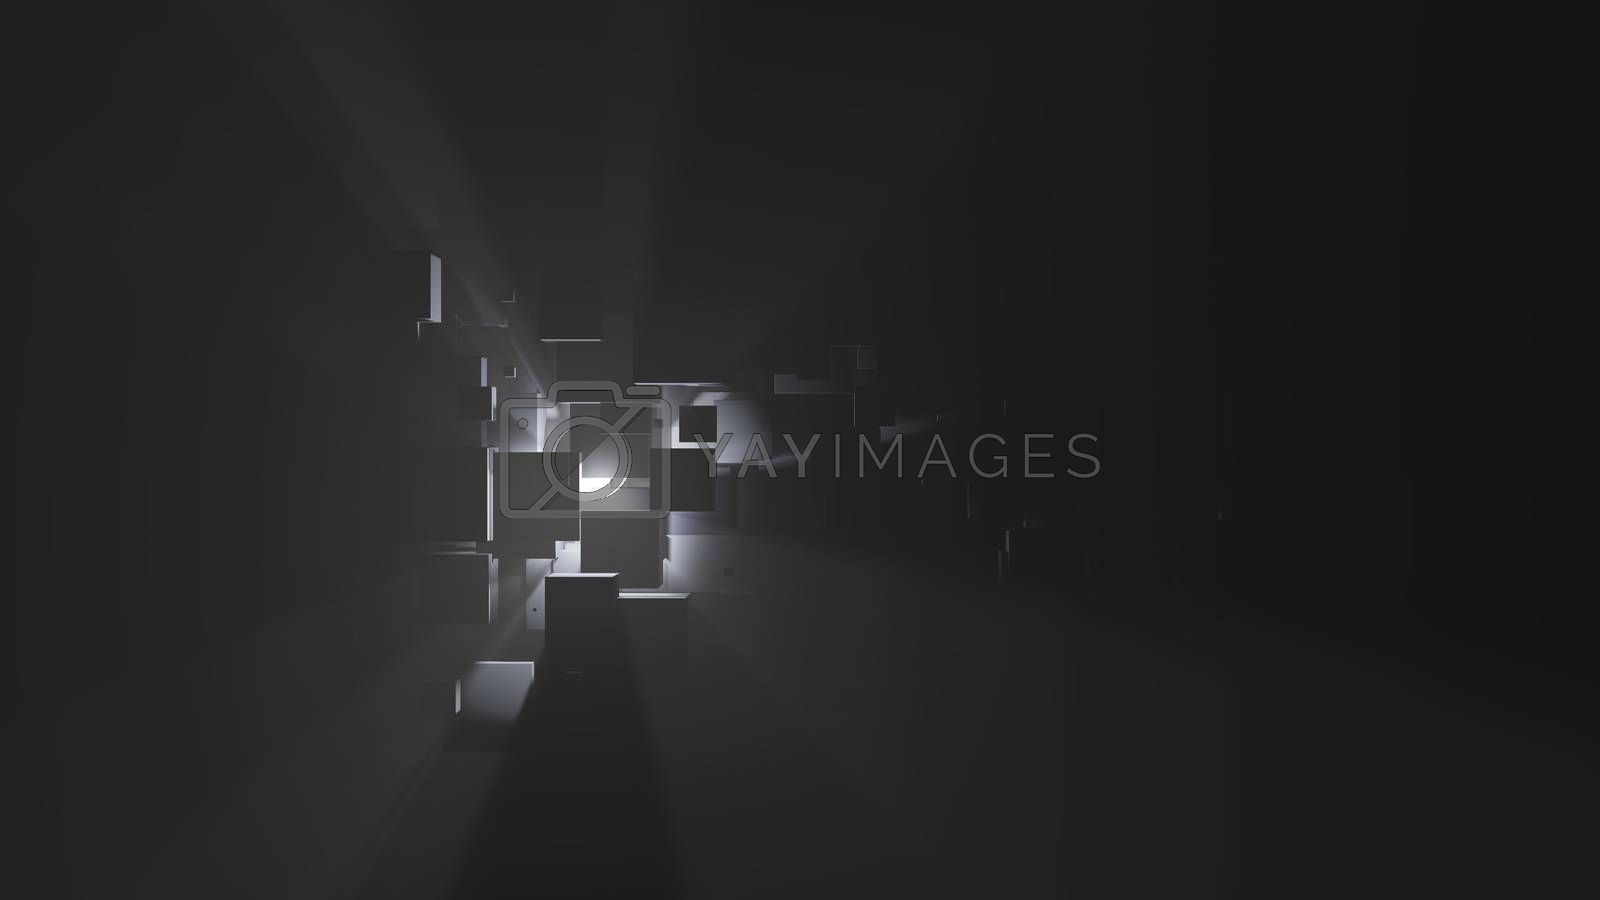 Abstract background of boxes, light rays and fog by cherezoff